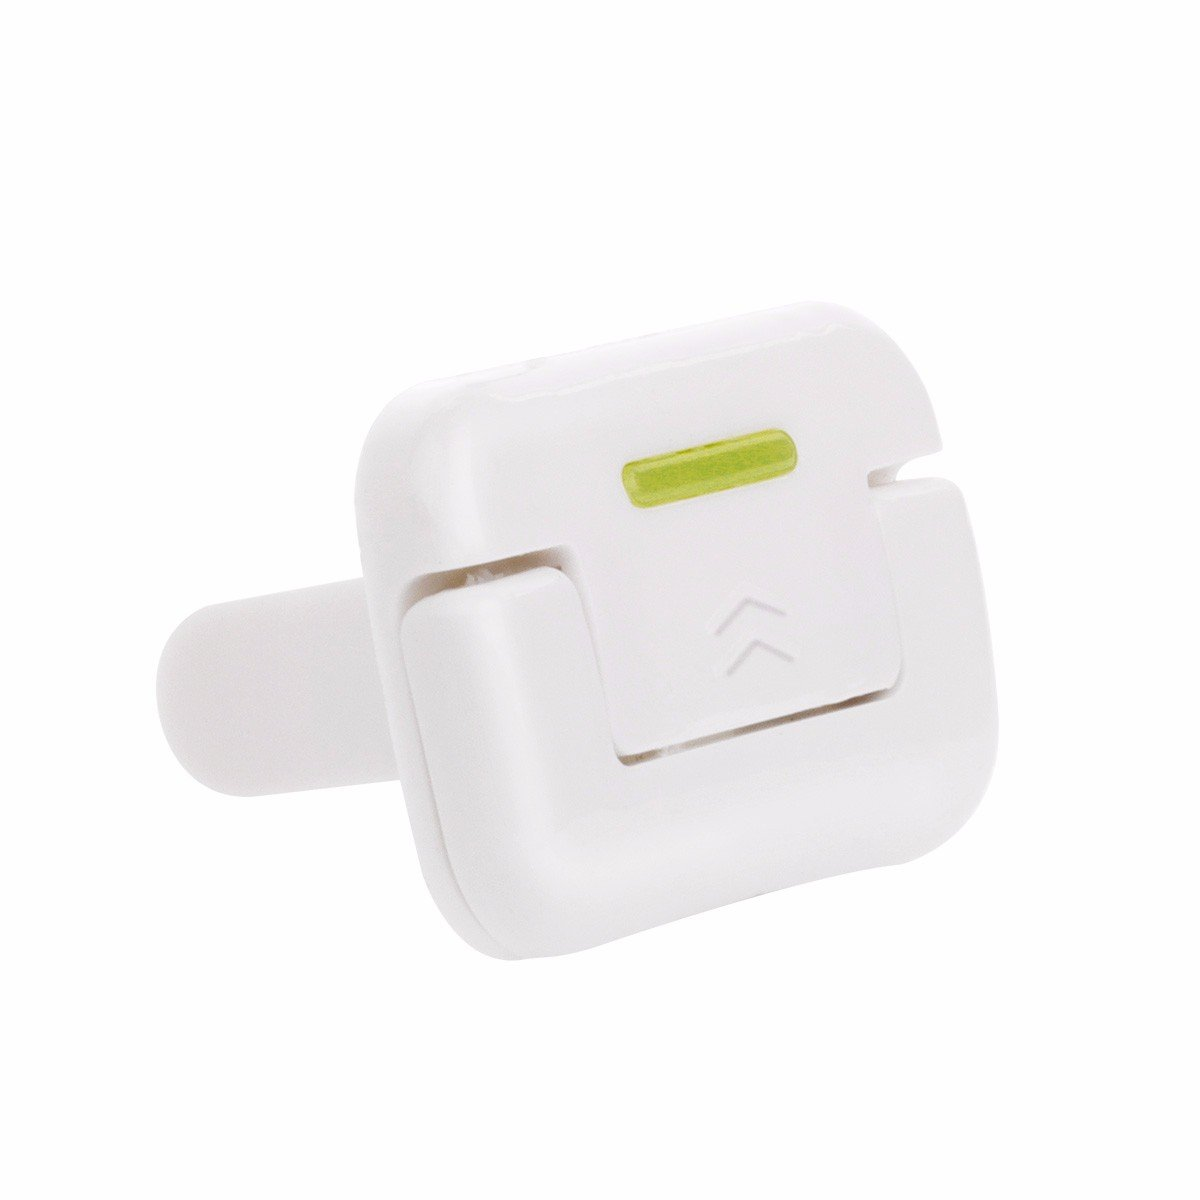 Clippasafe Socket Protector Electric Plug Cover Baby Proof Child Safety